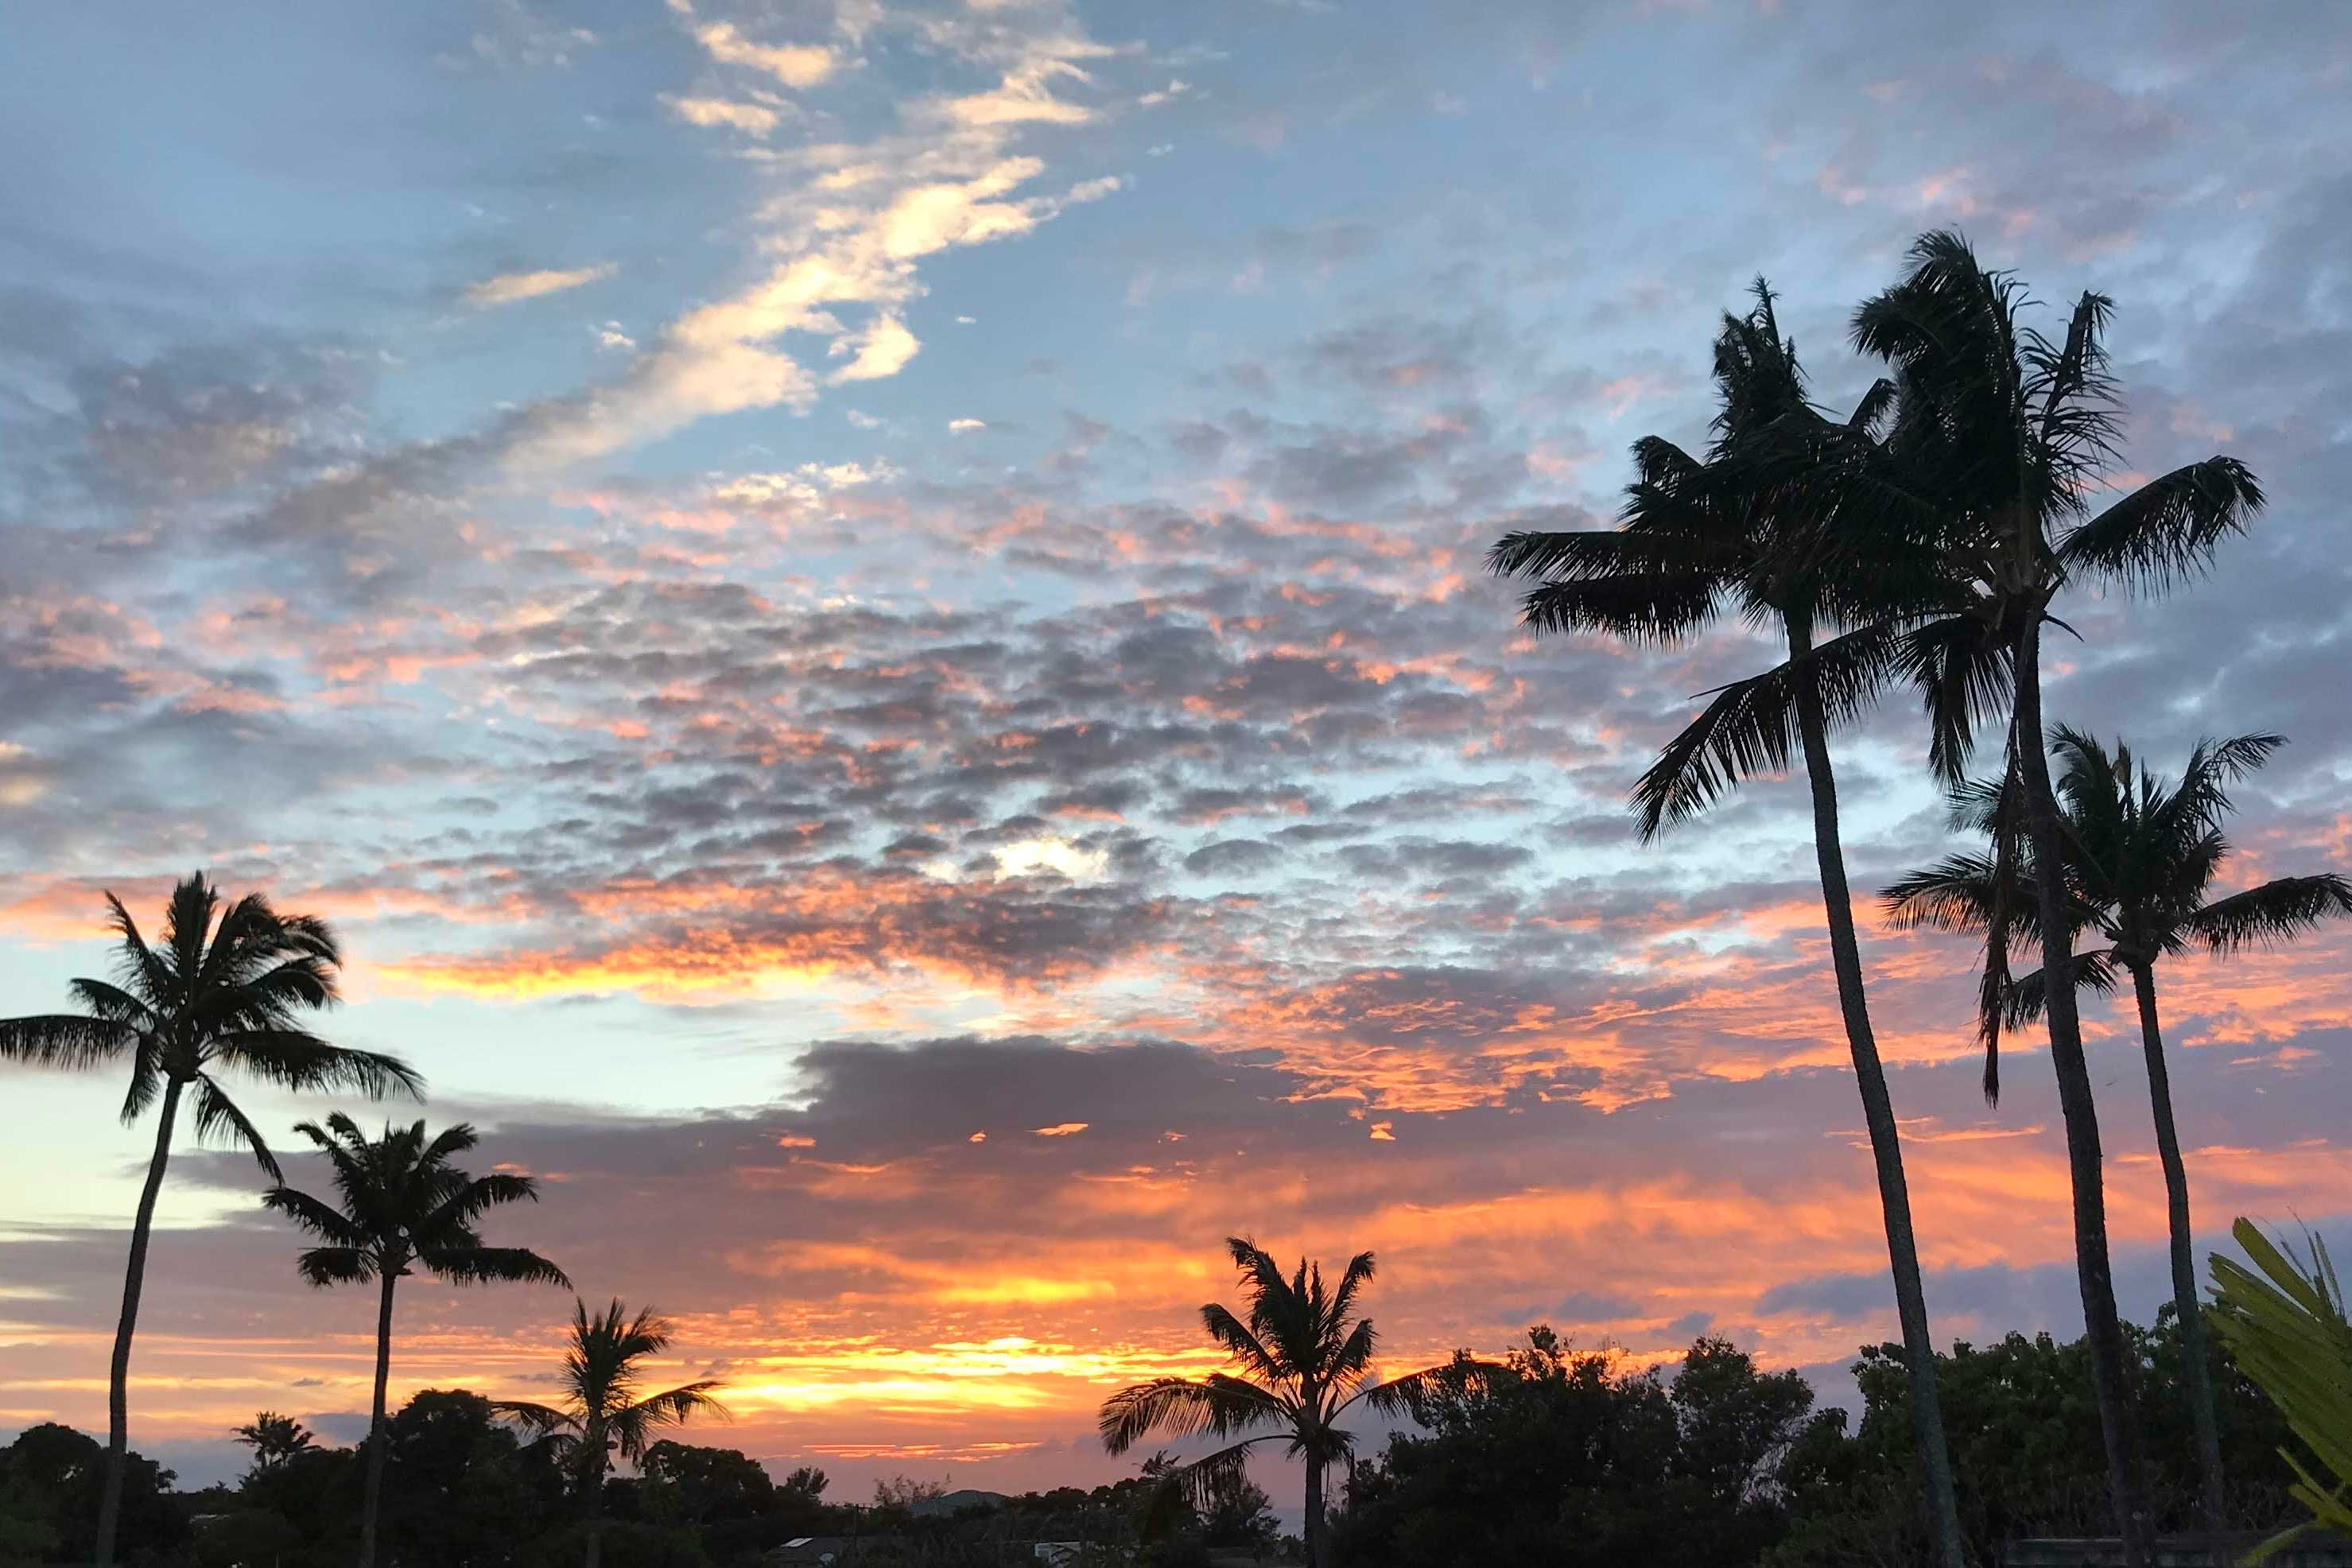 The sunsets at this Maui getaway are absolutely stunning!